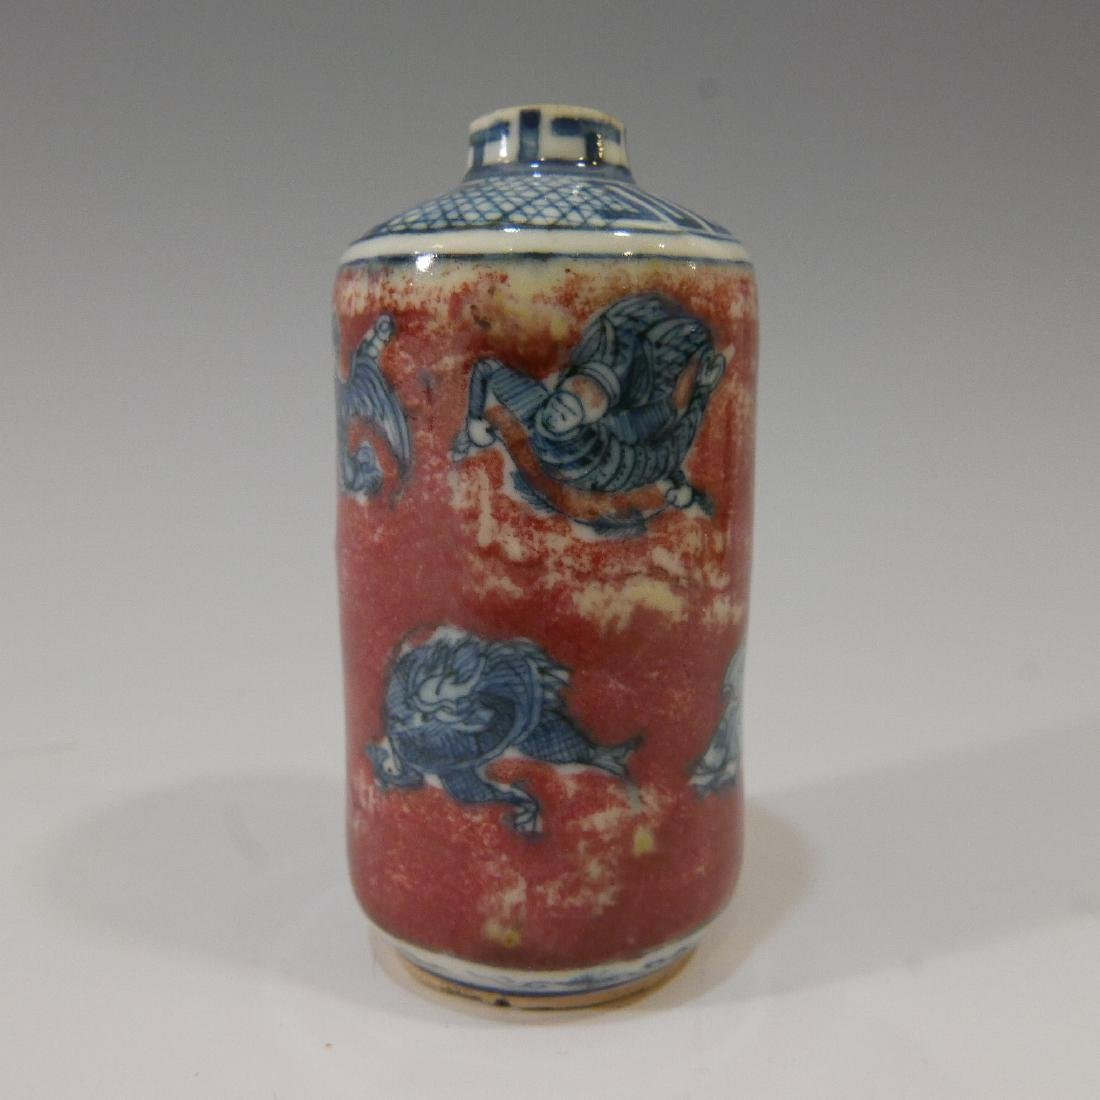 CHINESE ANTIQUE SNUFF BOTTLE - BLUE WHITE & COPPER RED